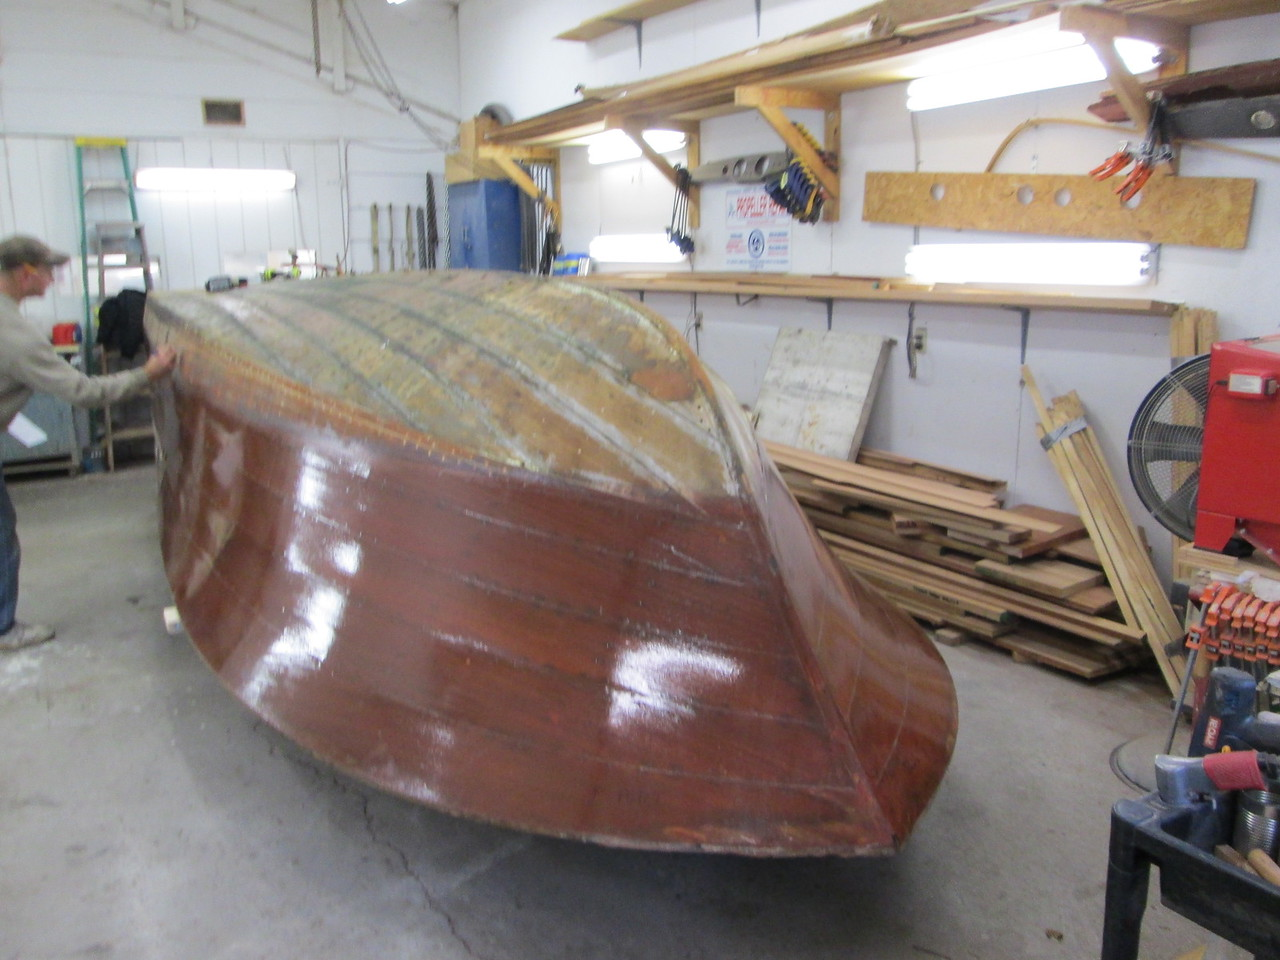 Front port view with the hull turned over.